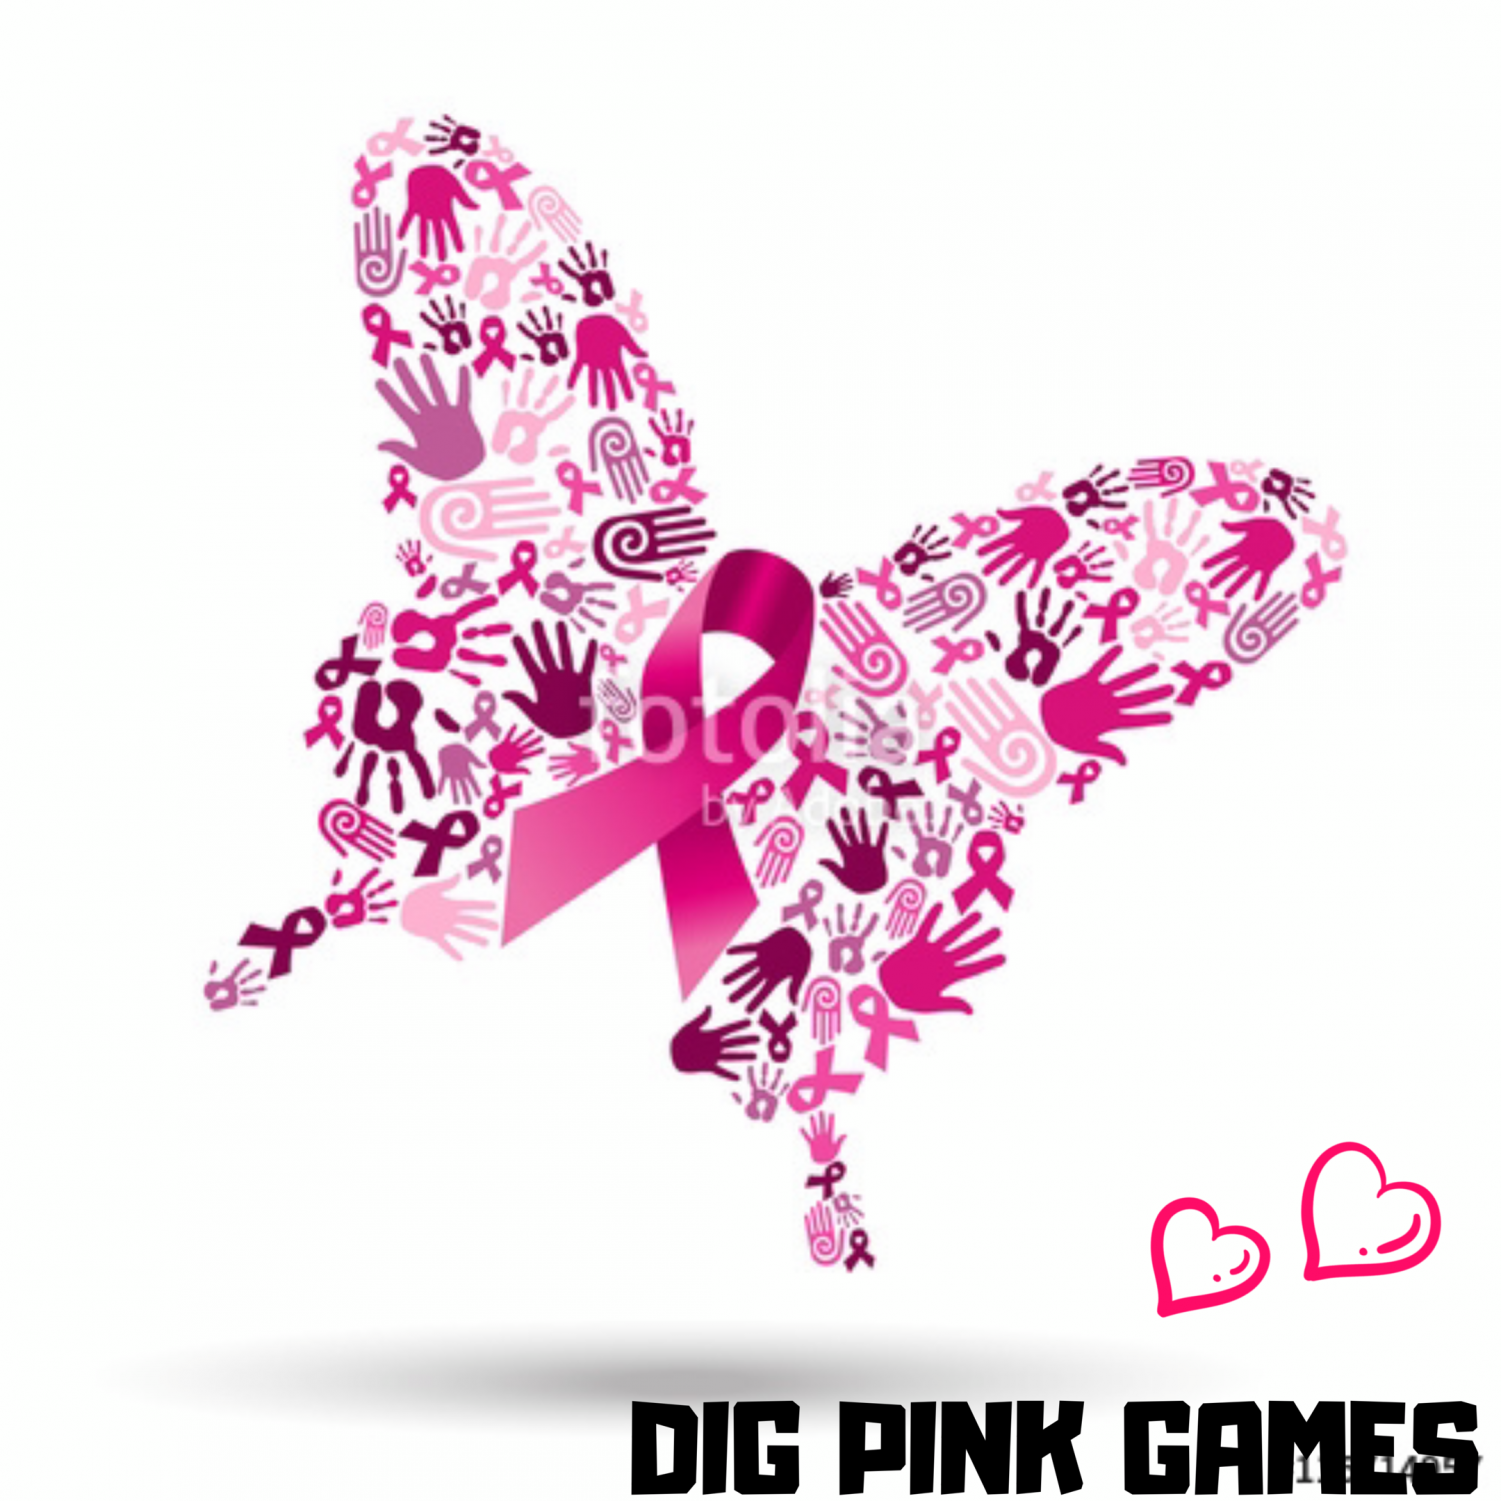 Volleyball's annual Dig Pink game will be dedicated to science teacher Lauren Wilkinson this year, who is currently in remission from breast cancer.